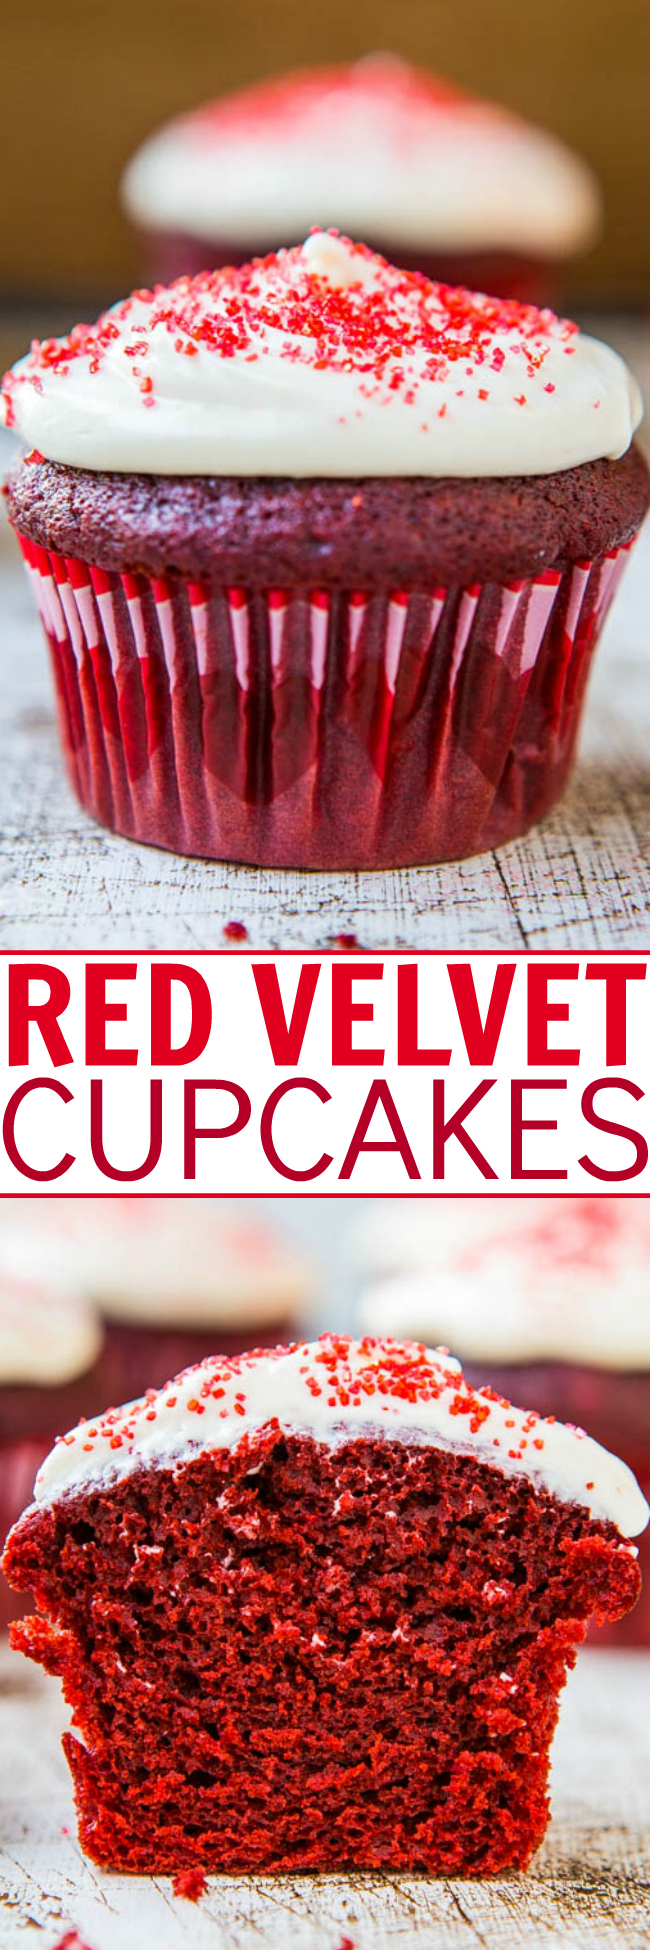 Red Velvet Cupcakes with Cream Cheese Frosting — If you've ever wanted to make red velvet cupcakes from scratch that are as good as those you'd find in a bakery, try this hassle-free recipe!!